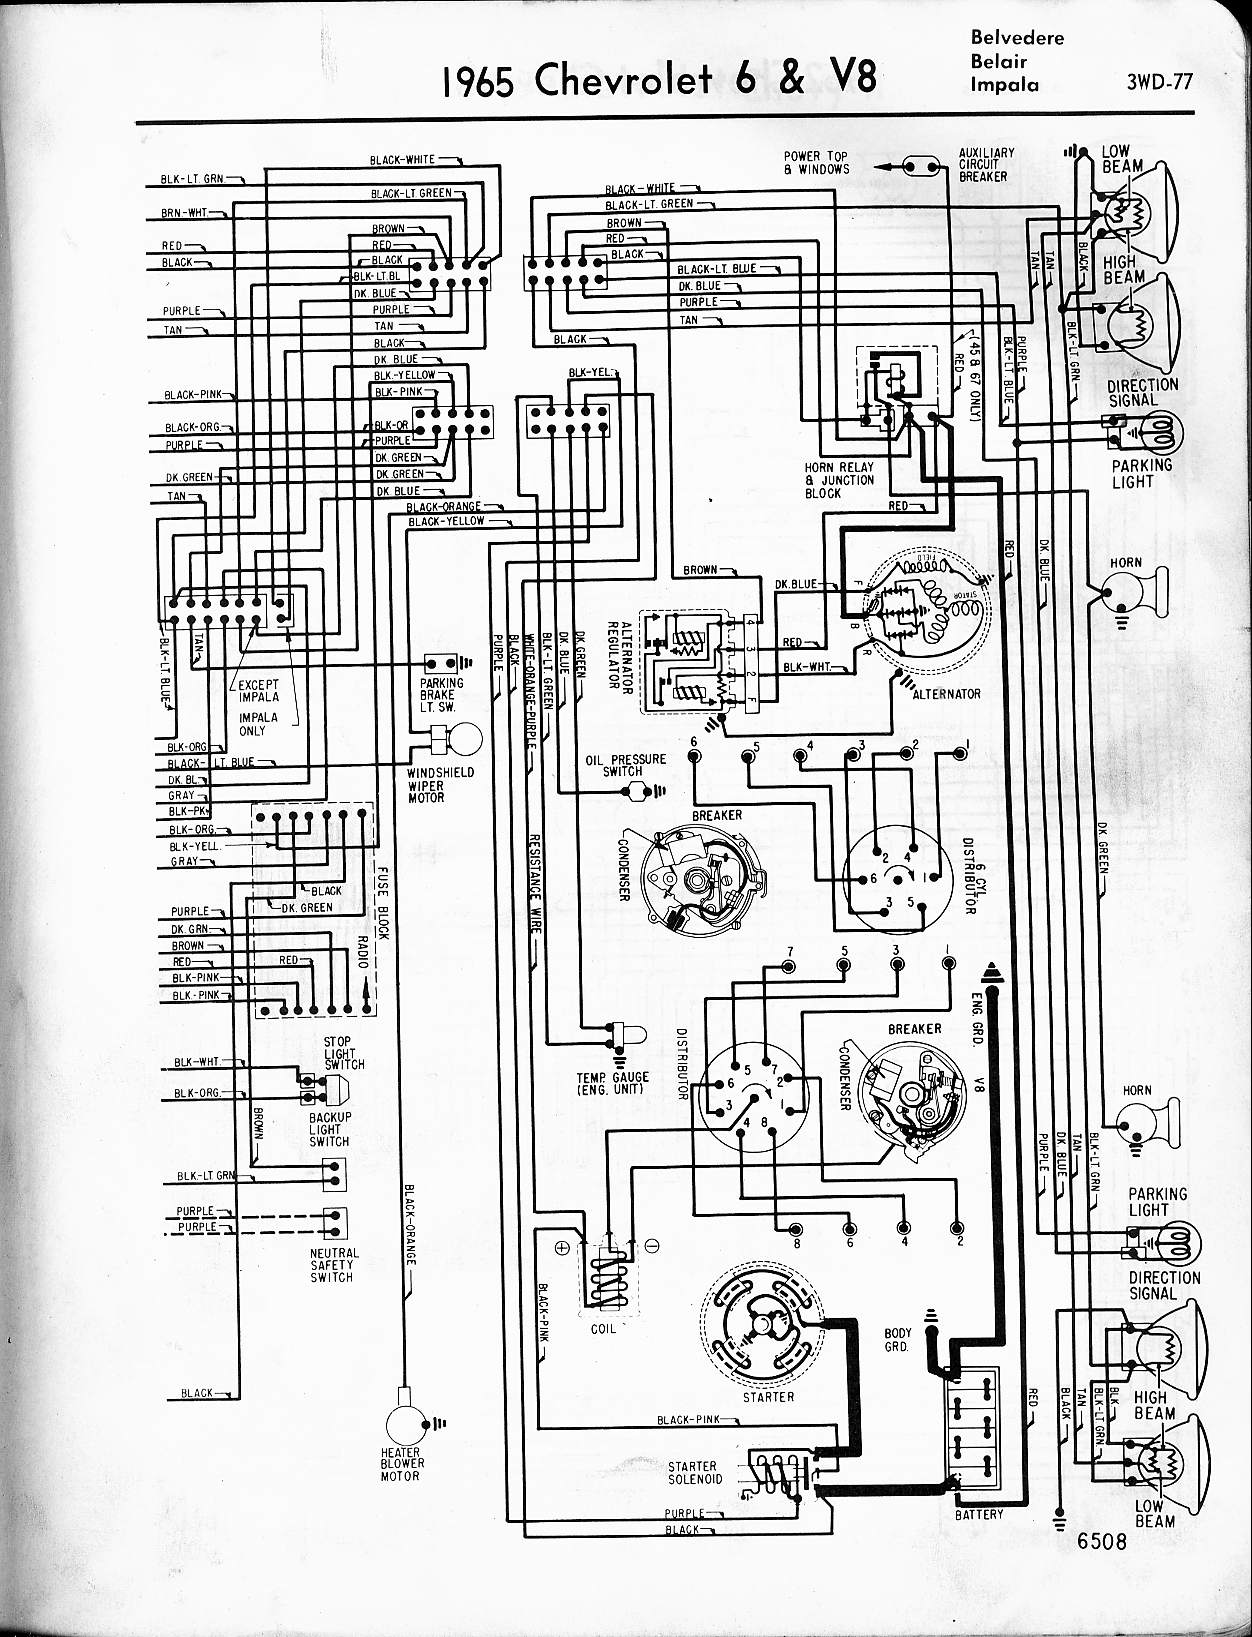 MWireChev65_3WD 077 1966 impala turn signal wiring diagram gto wire diagram \u2022 wiring 1975 impala wiring diagram at virtualis.co